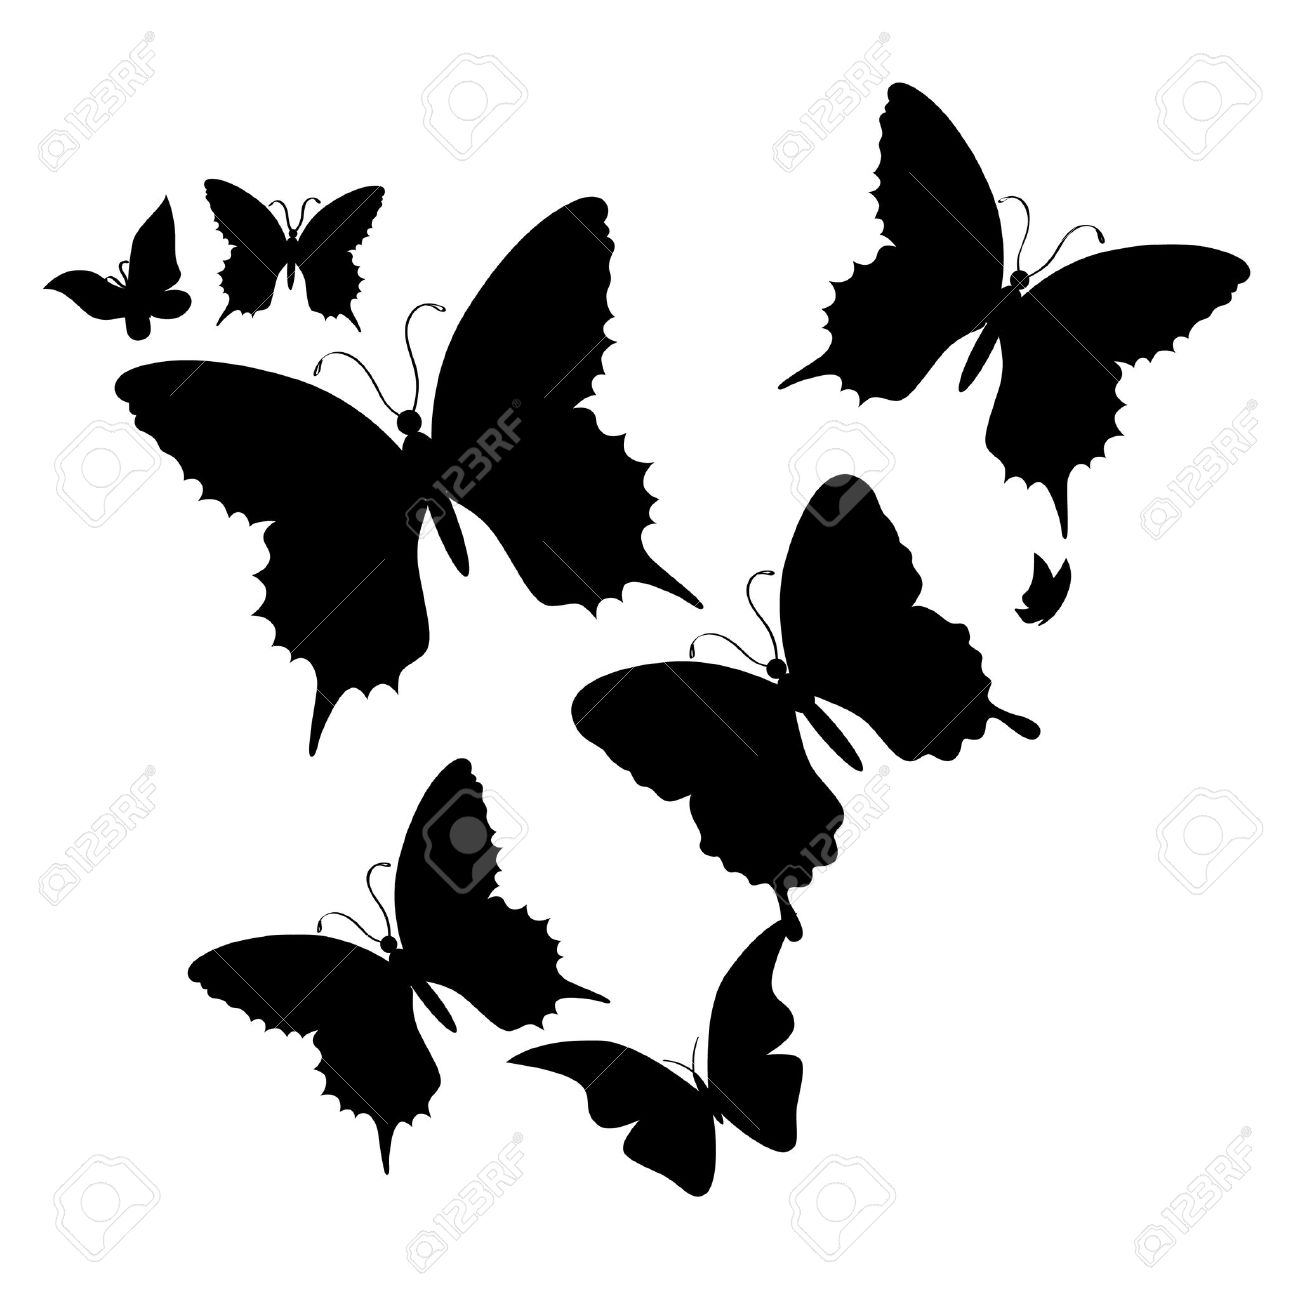 butterfly silhouette stock photos u0026 pictures royalty free